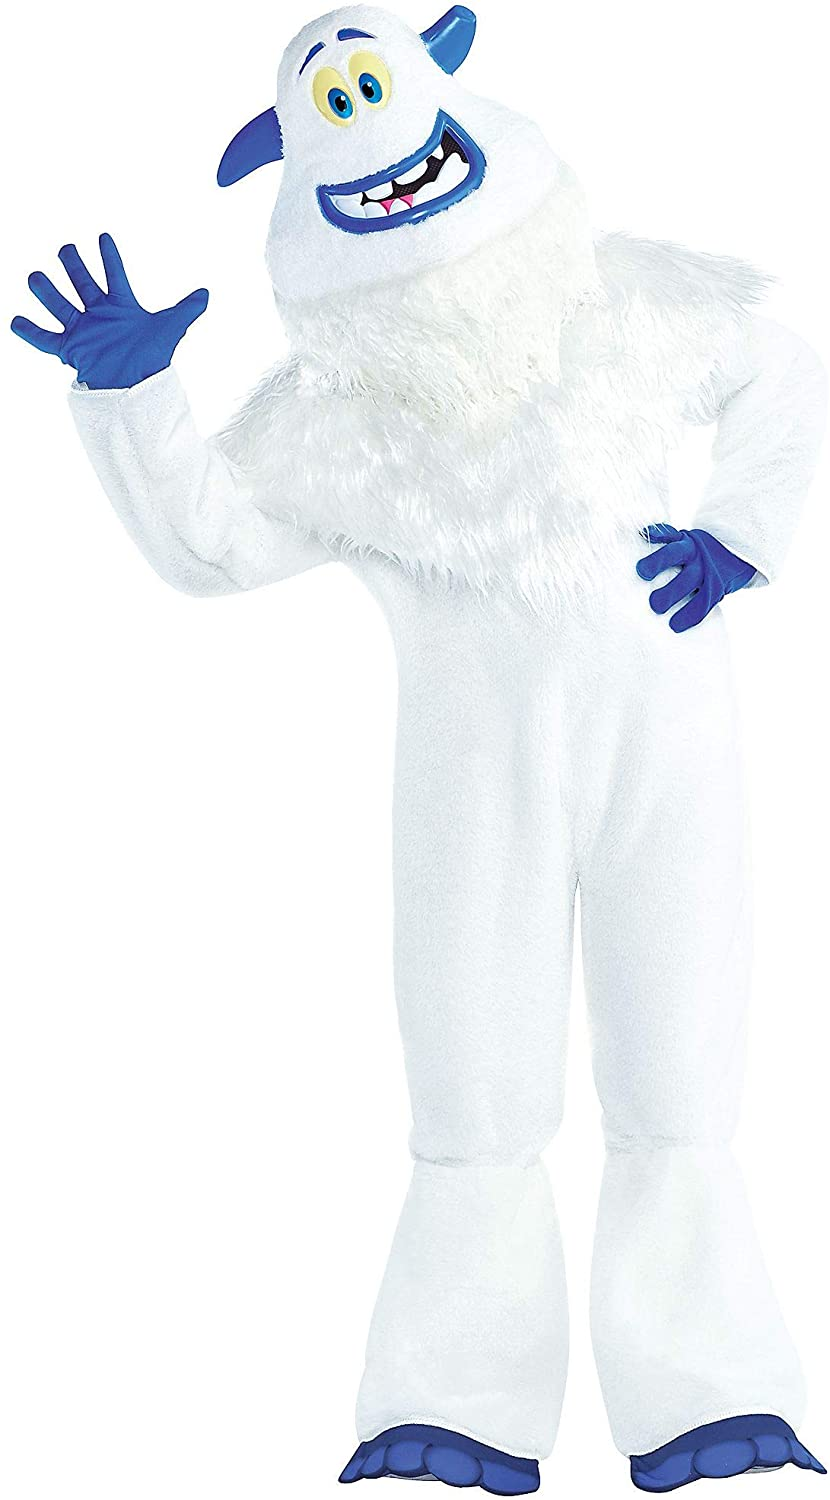 Costumes USA Smallfoot Migo Costume for Boys, Size Small, Includes a Jumpsuit, a Mask, Gloves, a Collar, and More